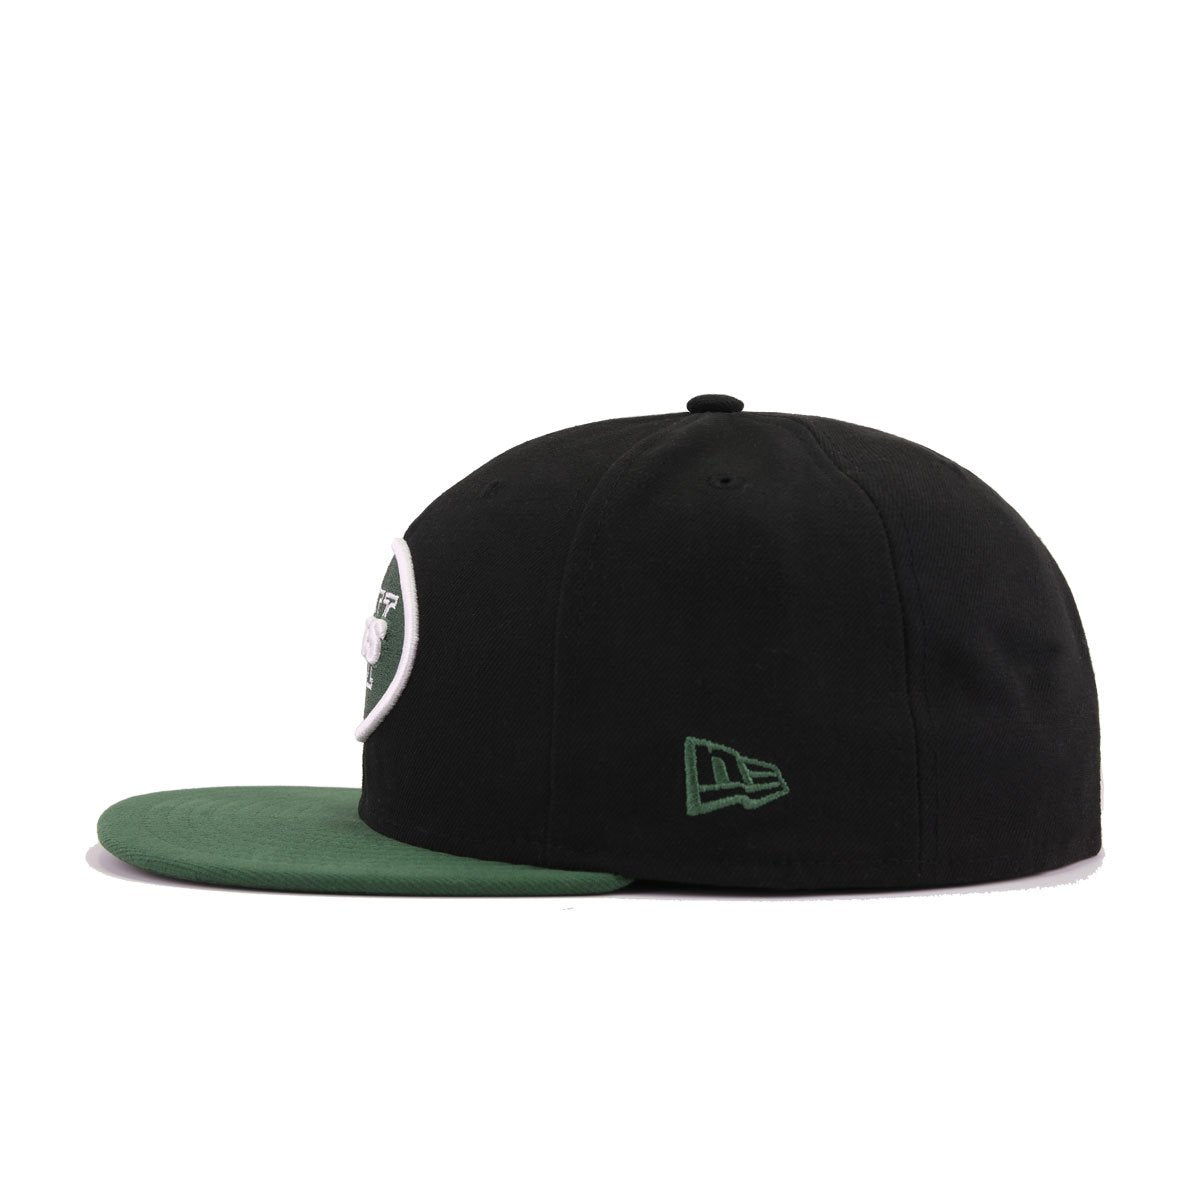 pretty nice 07ffa 74a3b New York Jets Black Cilantro Green New Era 59Fifty Fitted